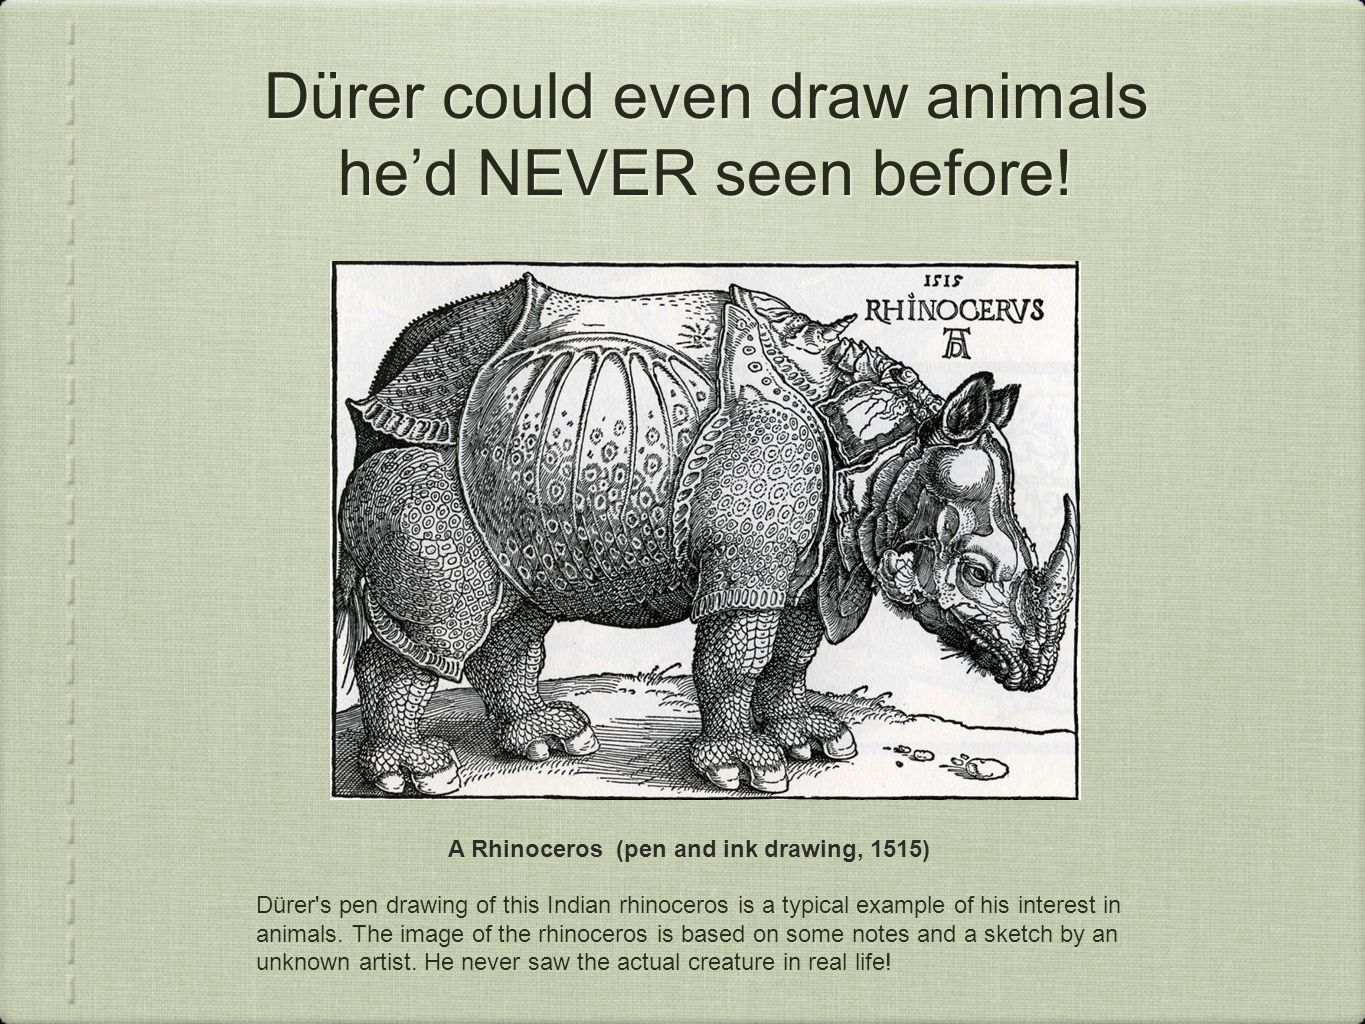 Dürer could even draw animals he'd NEVER seen before.